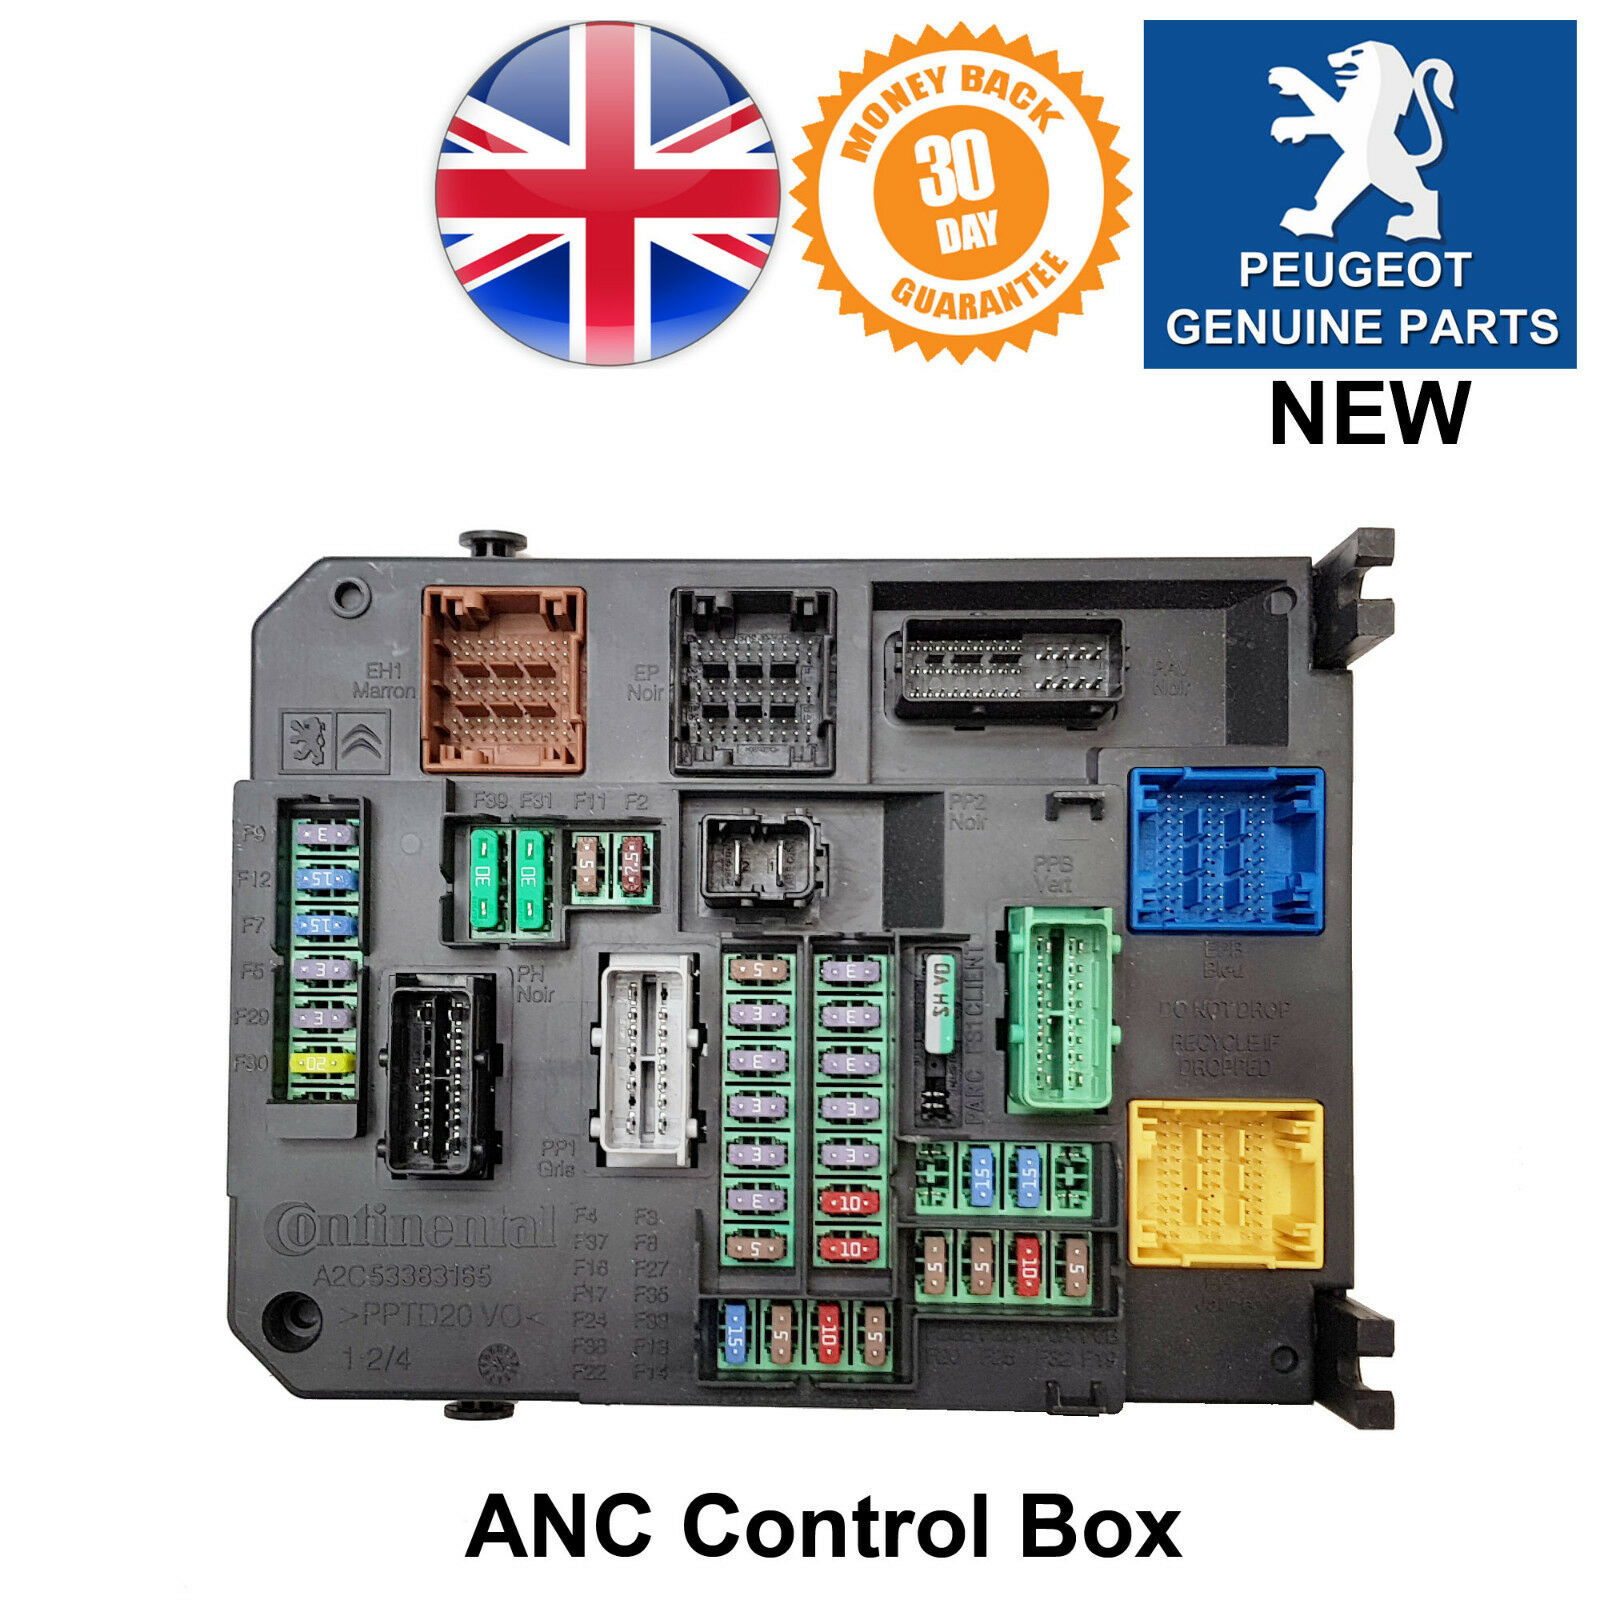 Peugeot 308 2013 Anc Control Engine Bsi Fuse Box Module 9806687880 Kia Sorento Transfer 1 Of 5only 2 Available